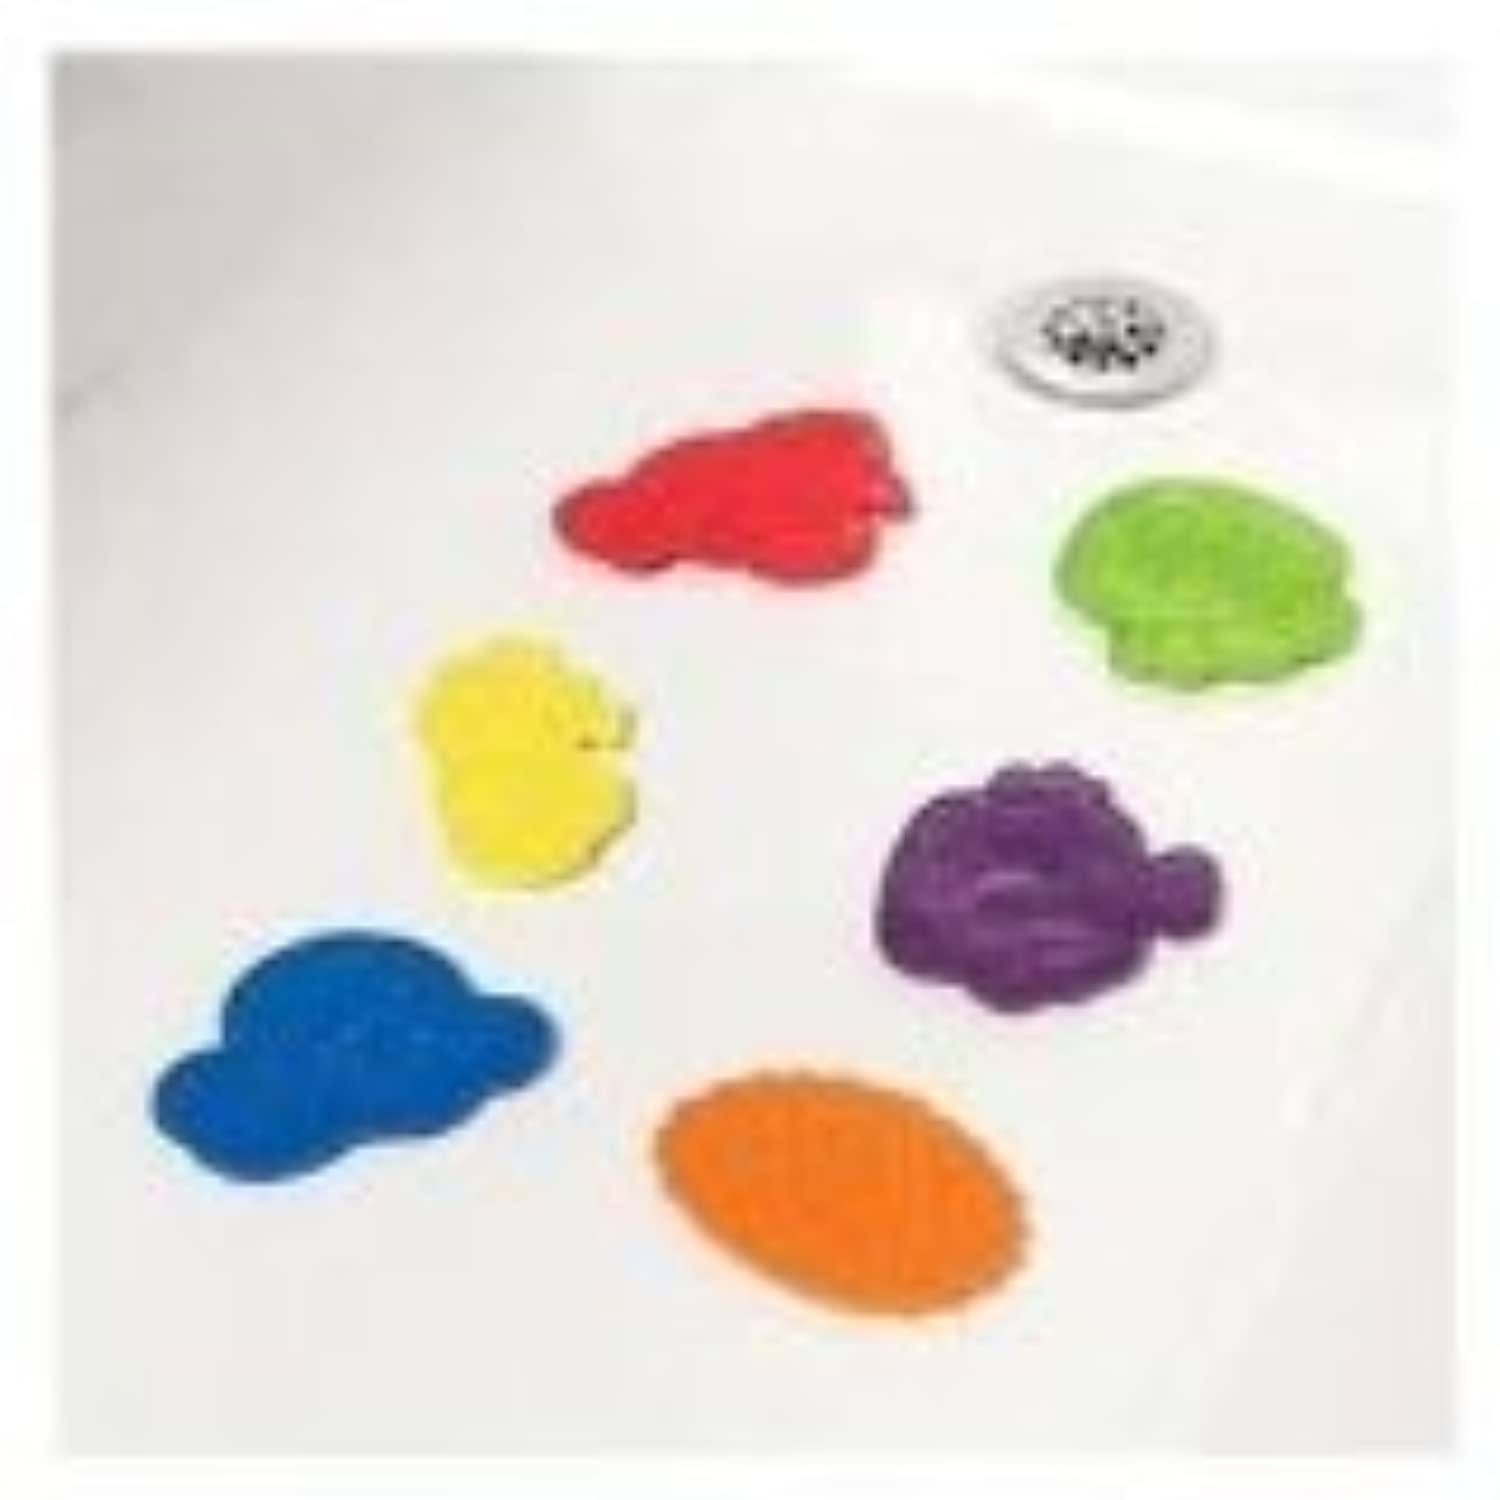 Safety 1st Secure Bath Grip Splash Pals - 6 Pack by Safety 1st [並行輸入品]